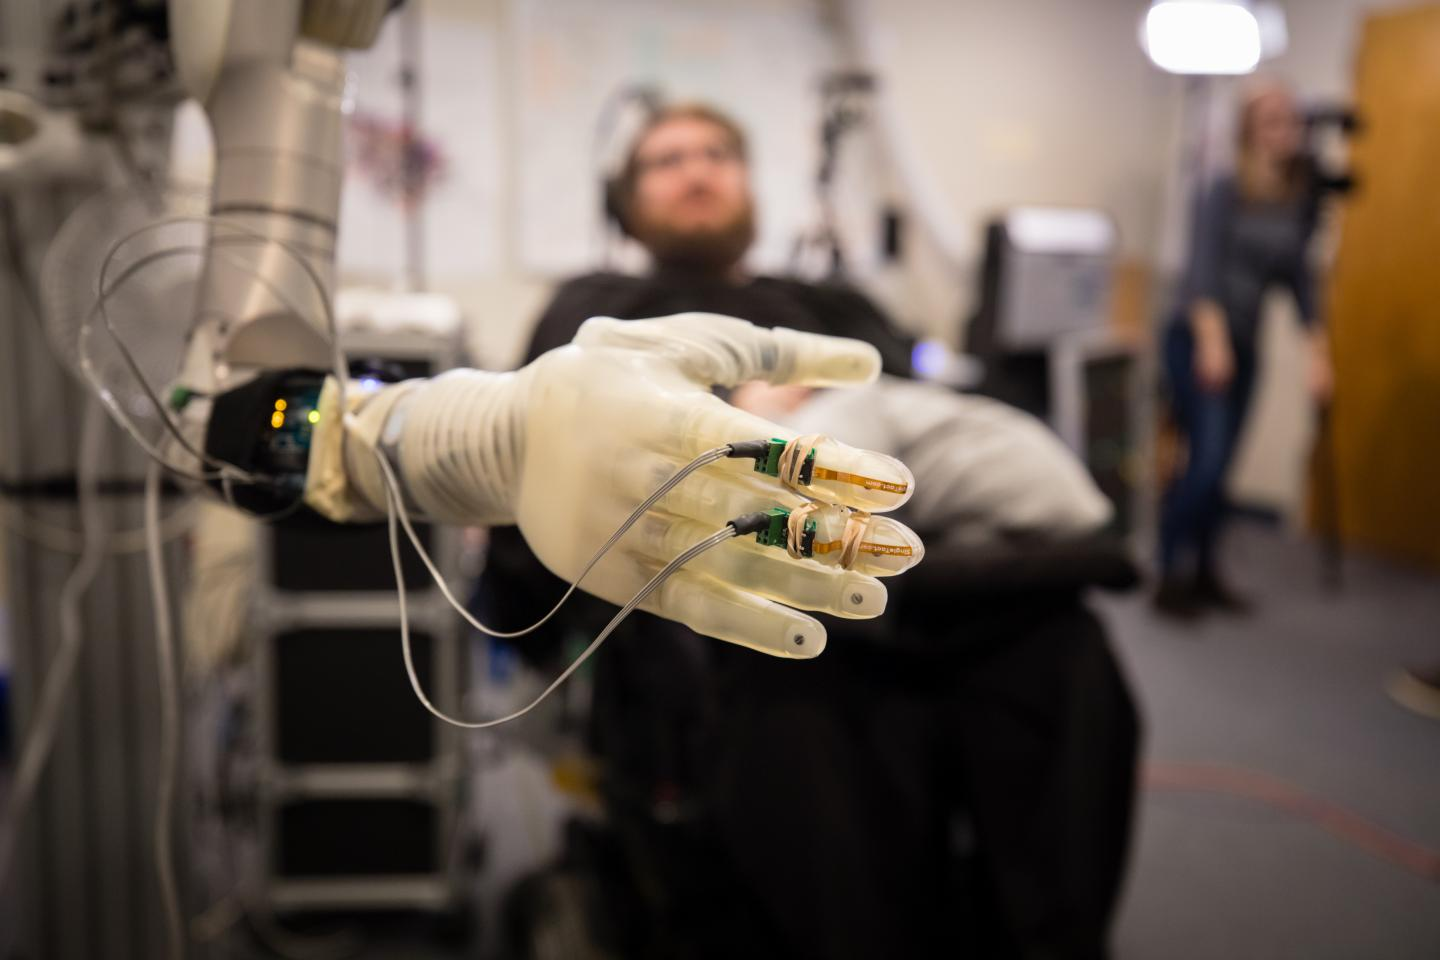 Patient with Prosthetic Hand